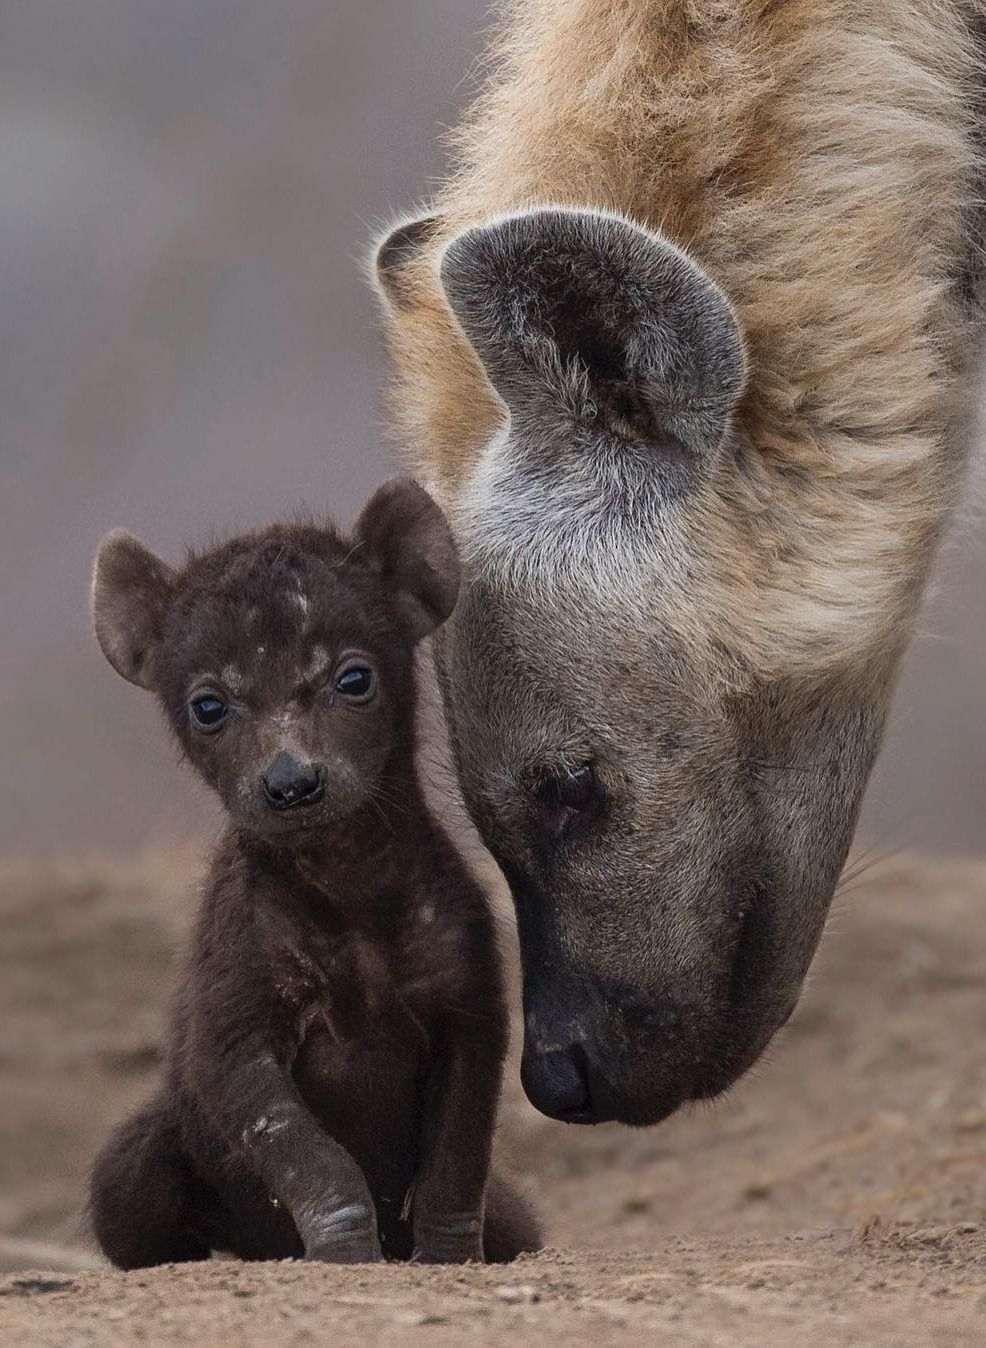 Beautiful Wildlife A Special Moment By Hoe Tiere Wilde Tiere Susse Tiere